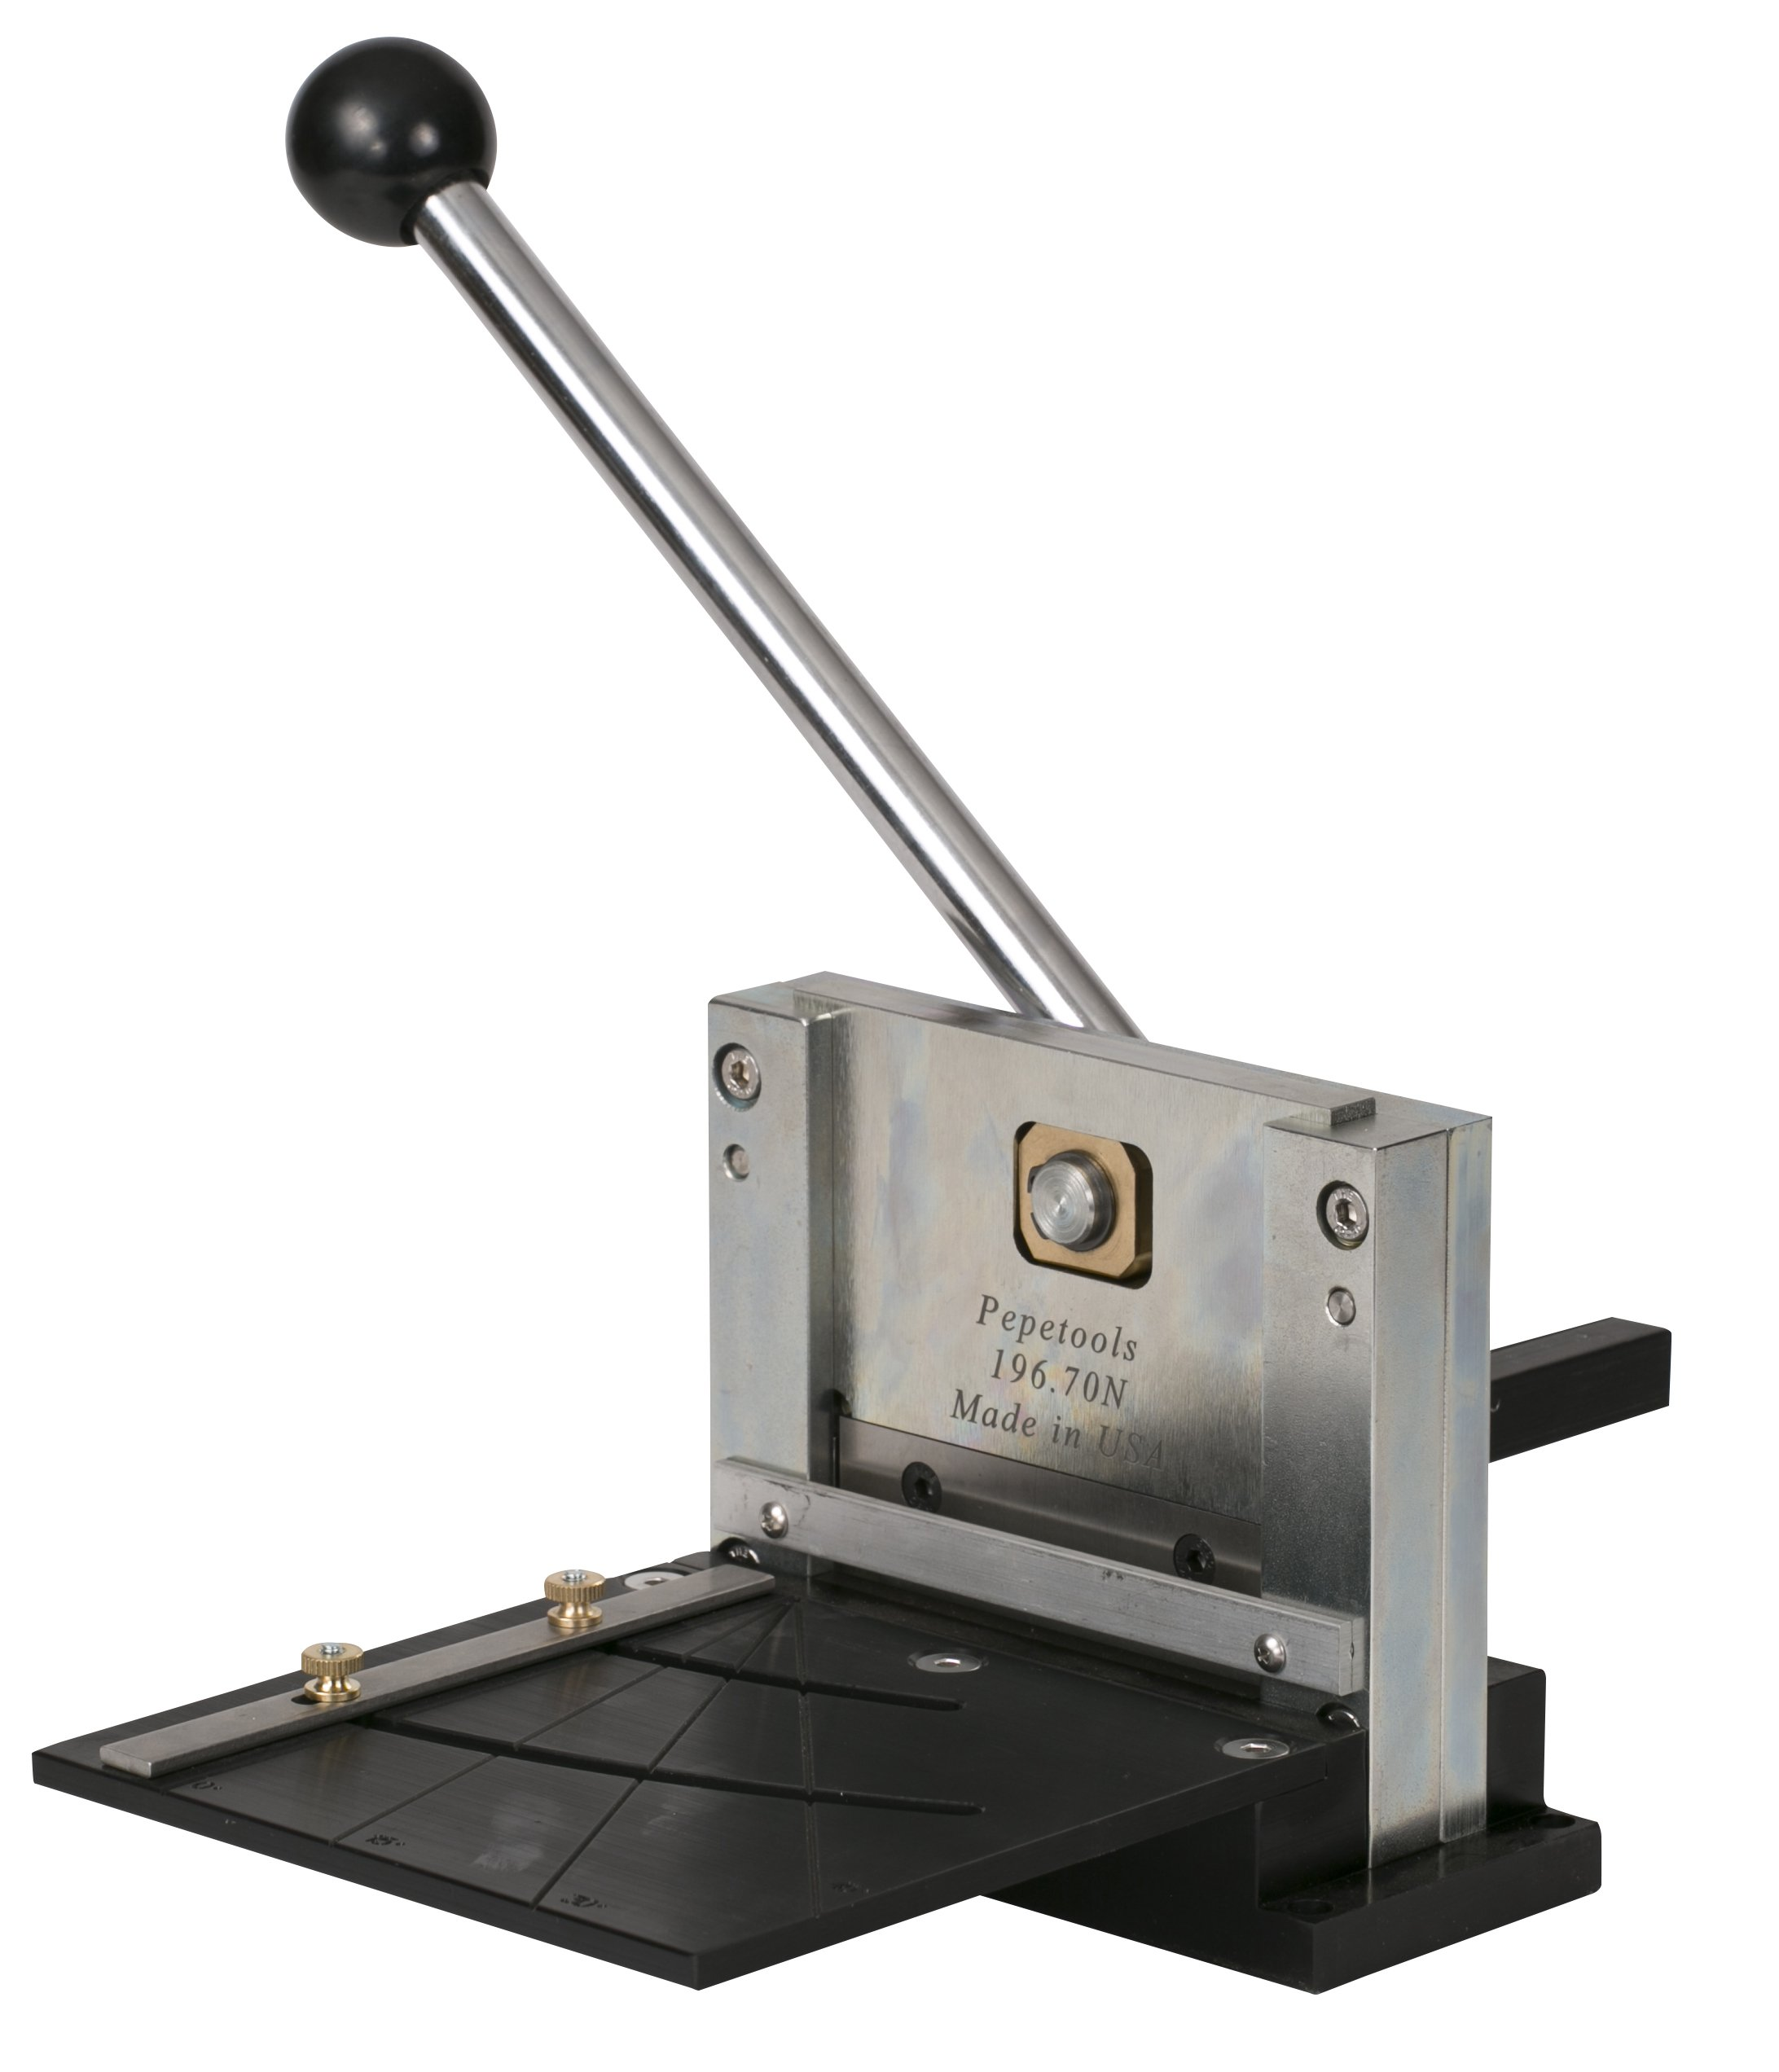 4'' GUILLOTINE SHEAR by Pepe Tools. Made in the USA